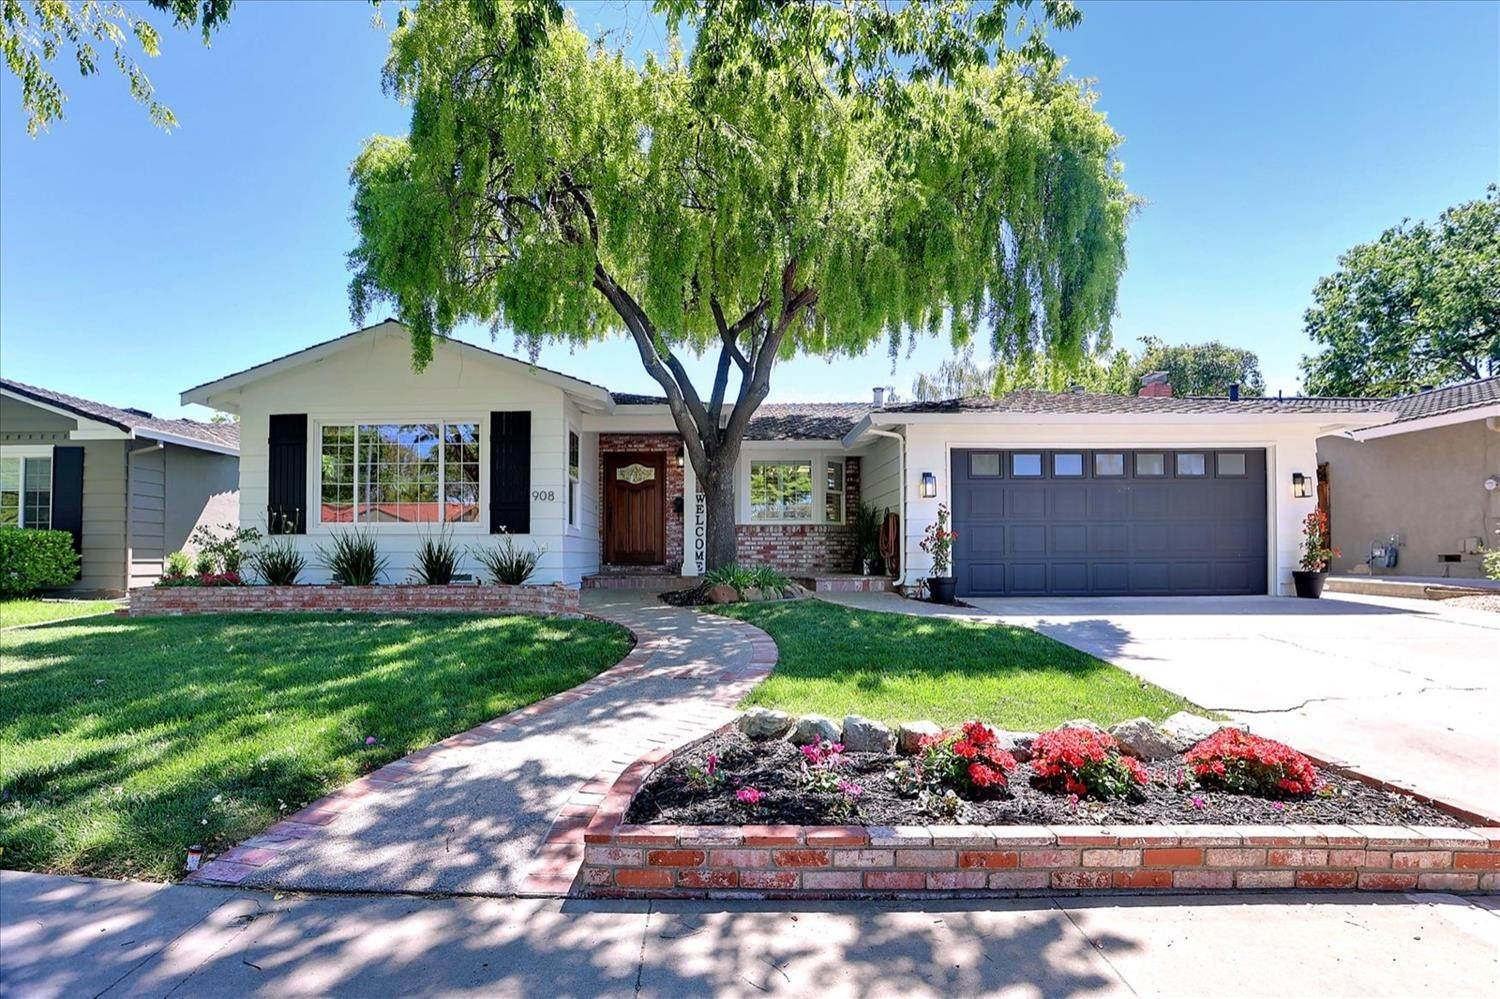 Single Family Homes for Active at 908 Lanewood Drive San Jose, California 95125 United States